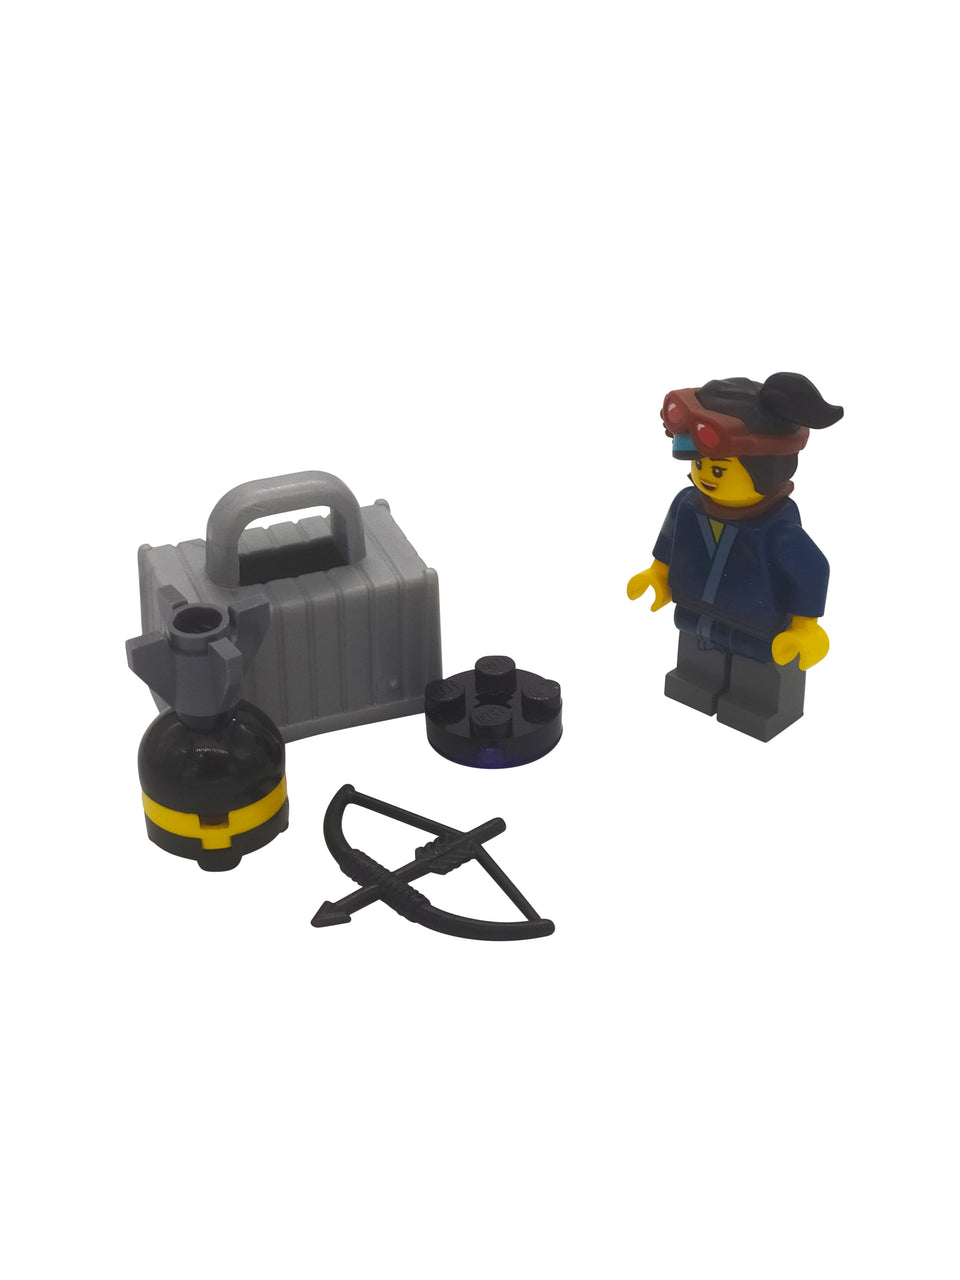 Lego Woman Warrior with accessories